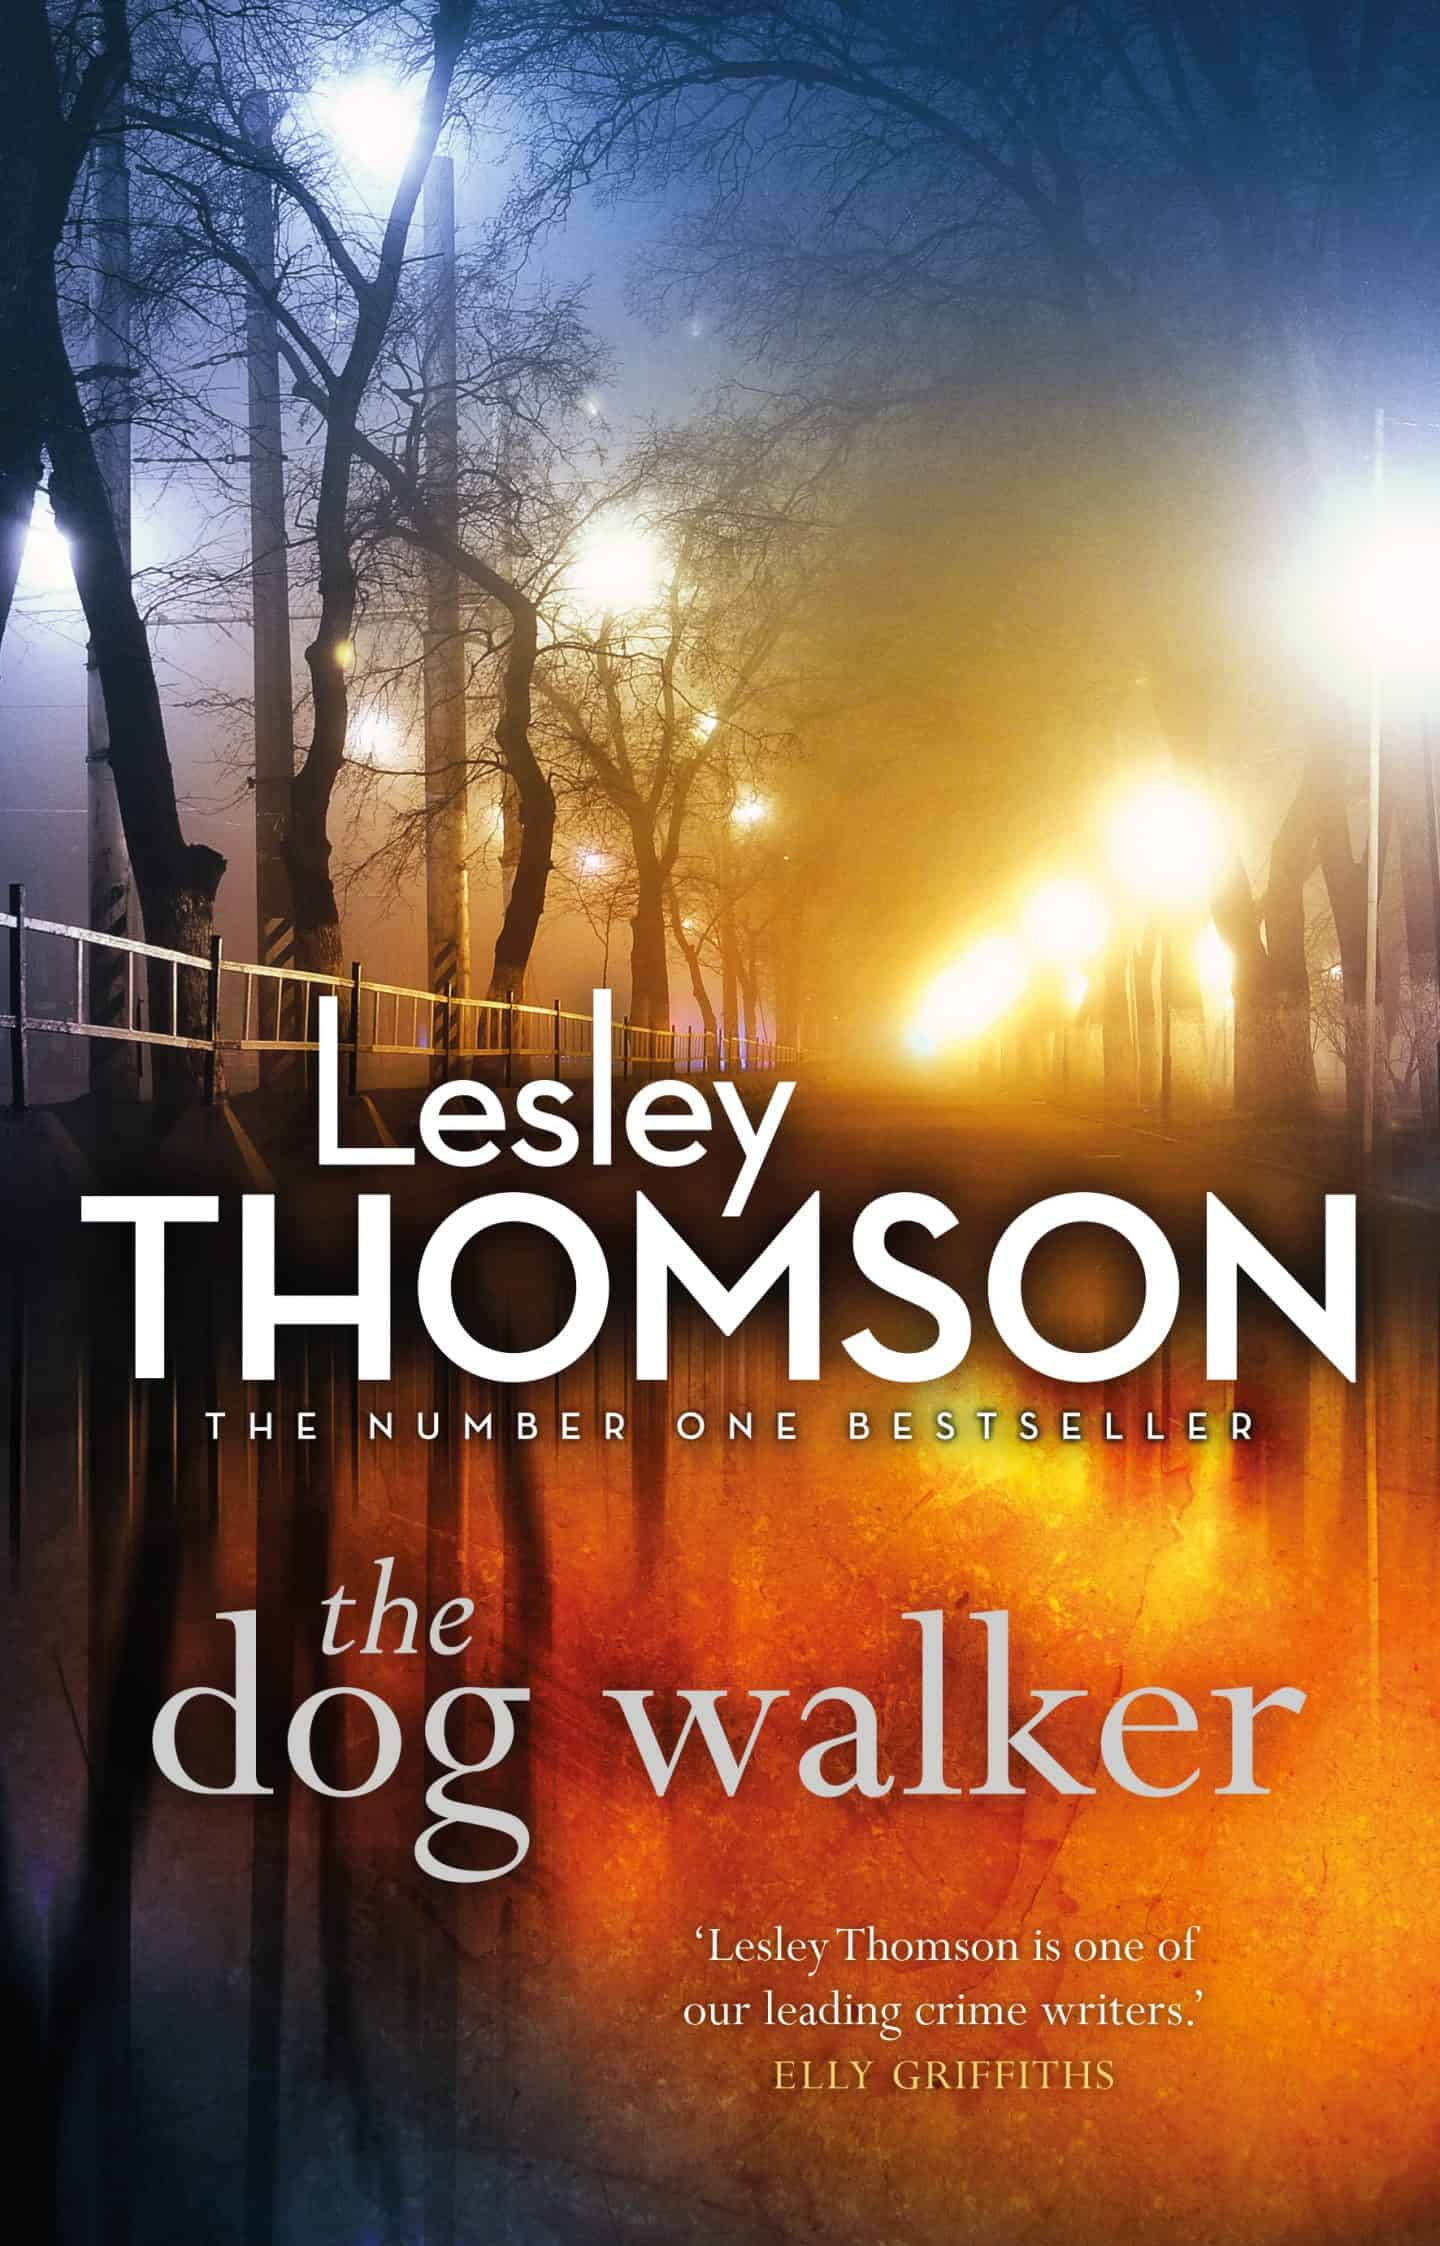 The Dogwalker by Lesley Thomson